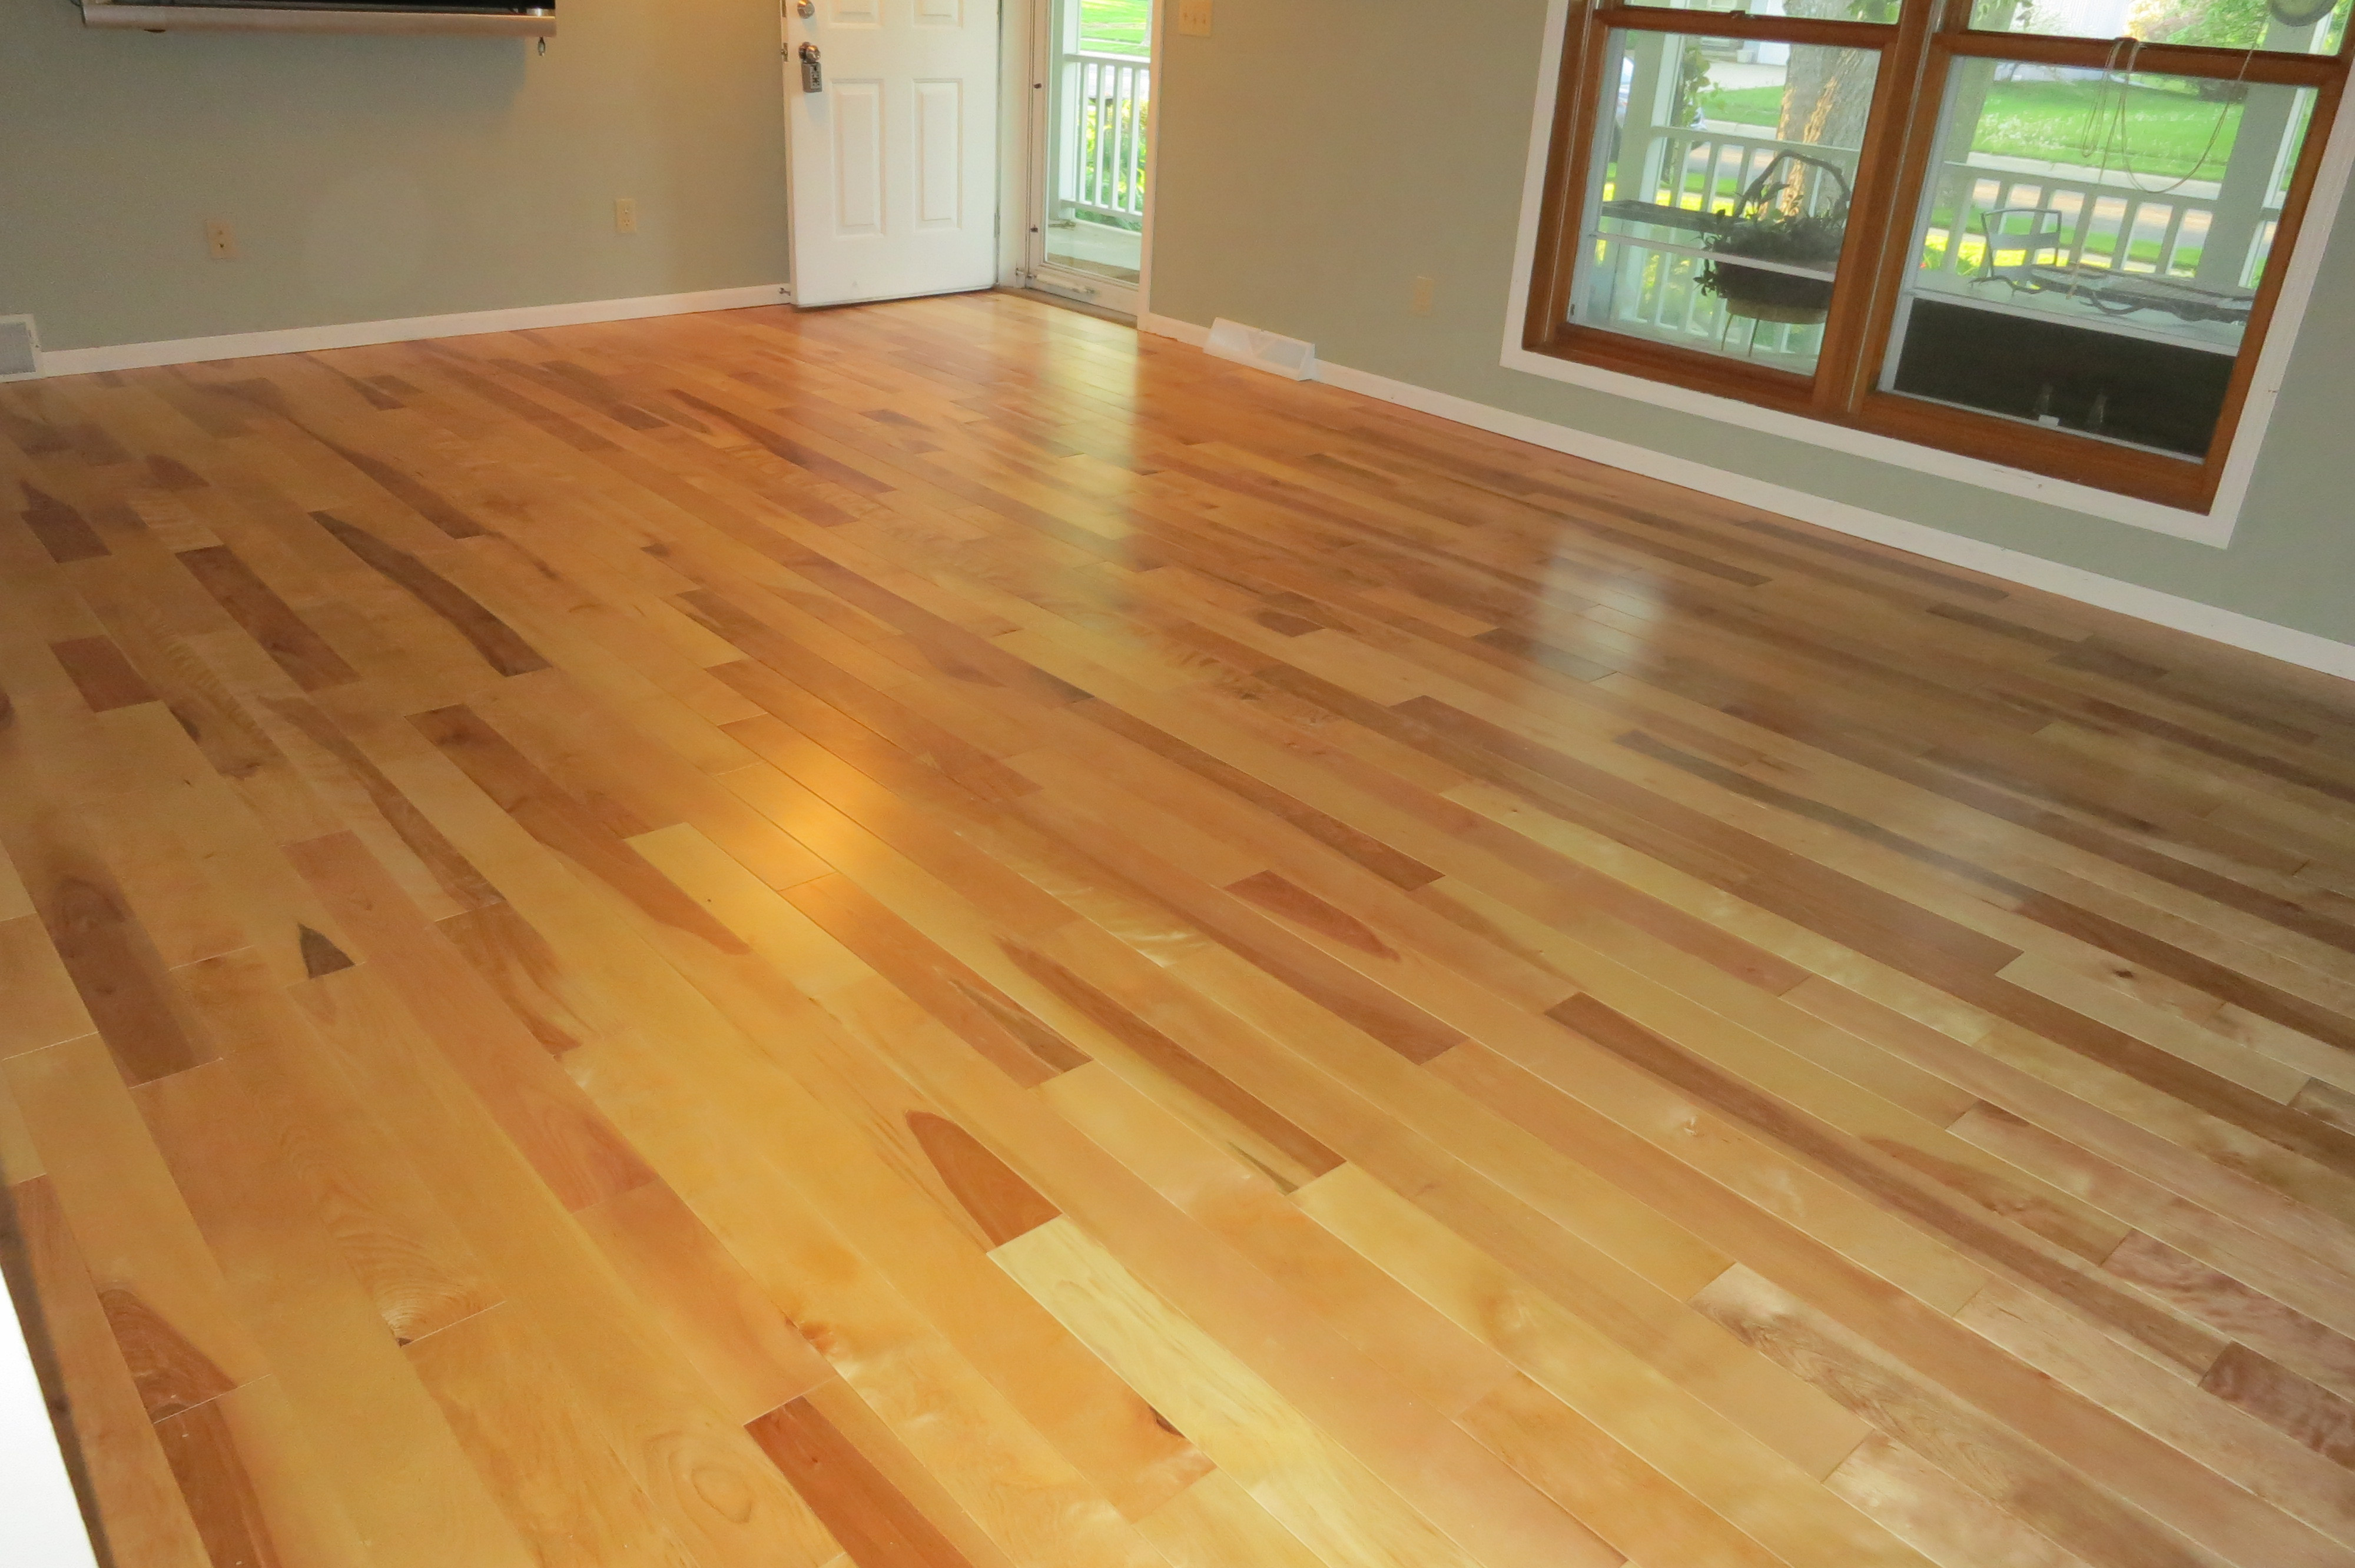 hardwood floor repair estimate of imperial wood floors madison wi hardwood floors hardwood floor for home a